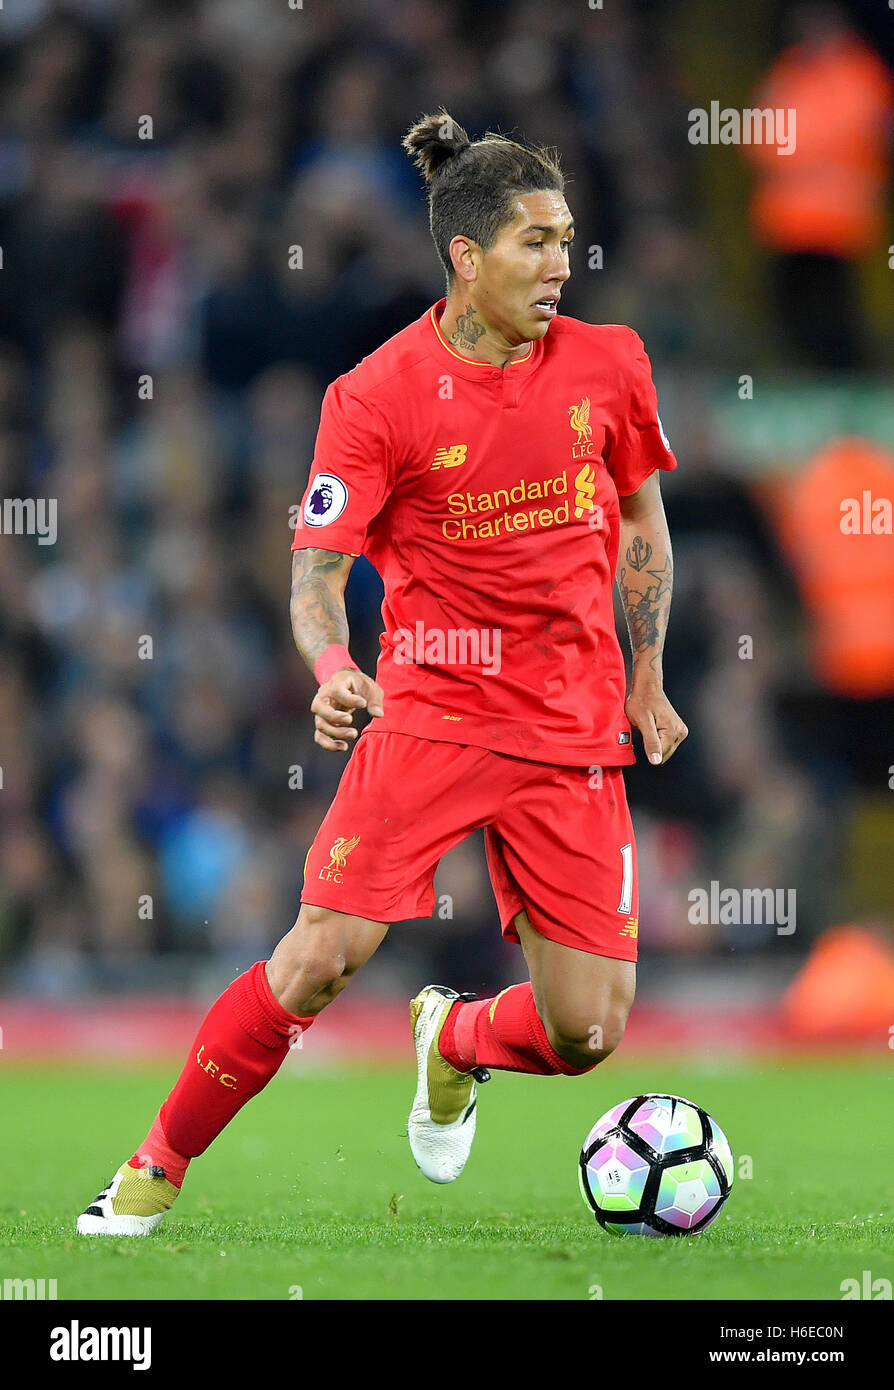 Liverpool s Roberto Firmino Stock Royalty Free Image